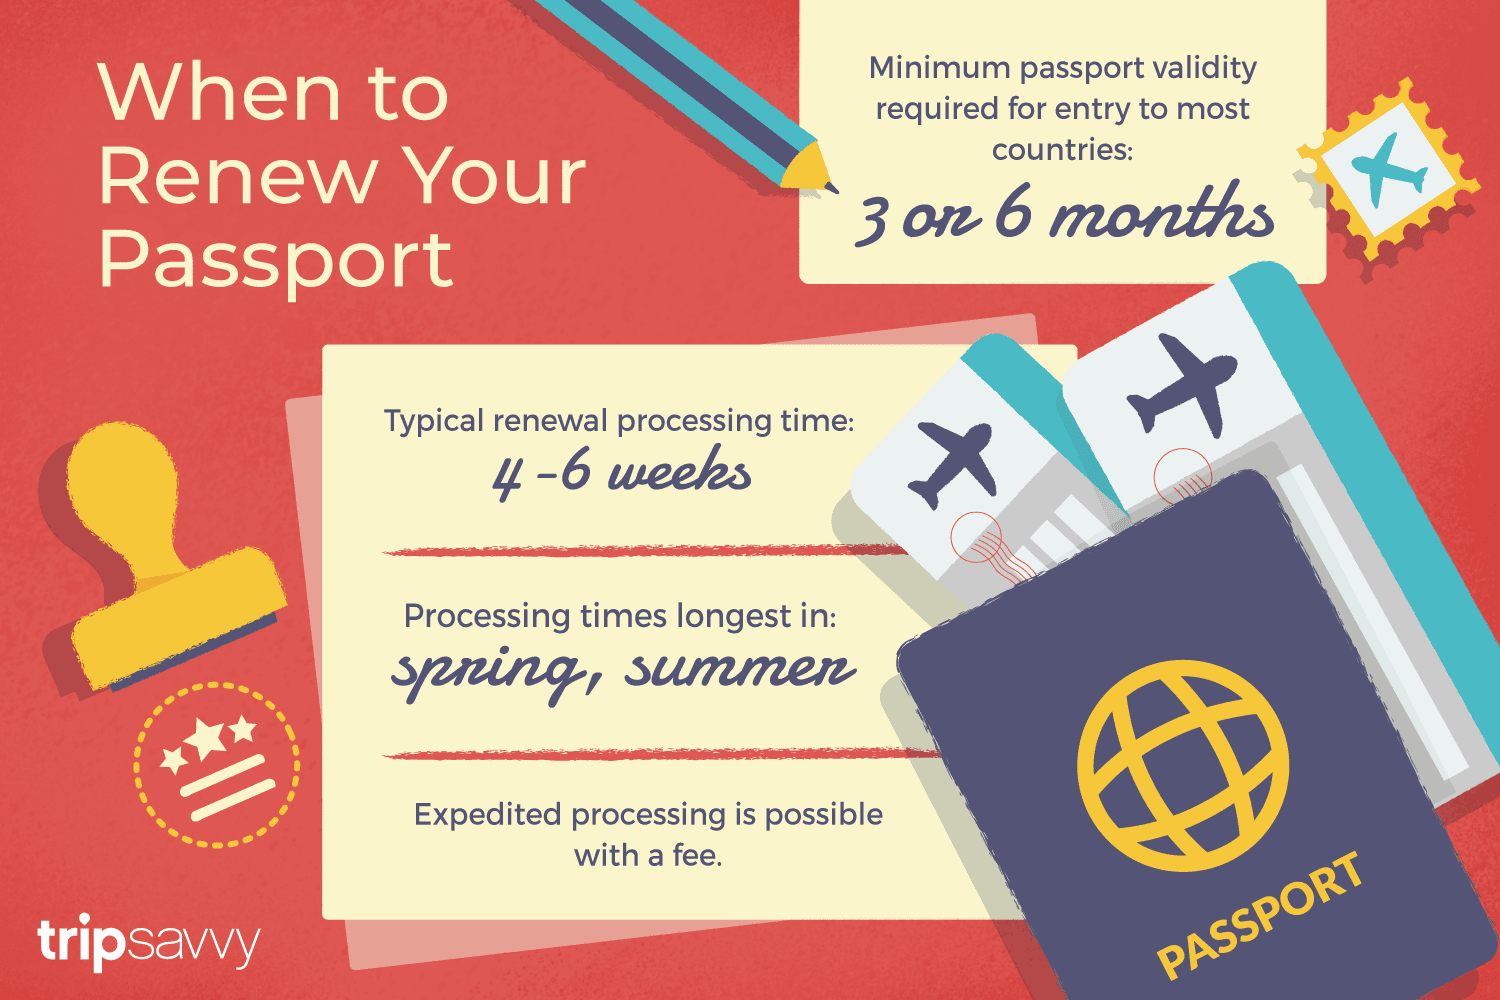 How Long Before Expiration Should I Renew My Passport?